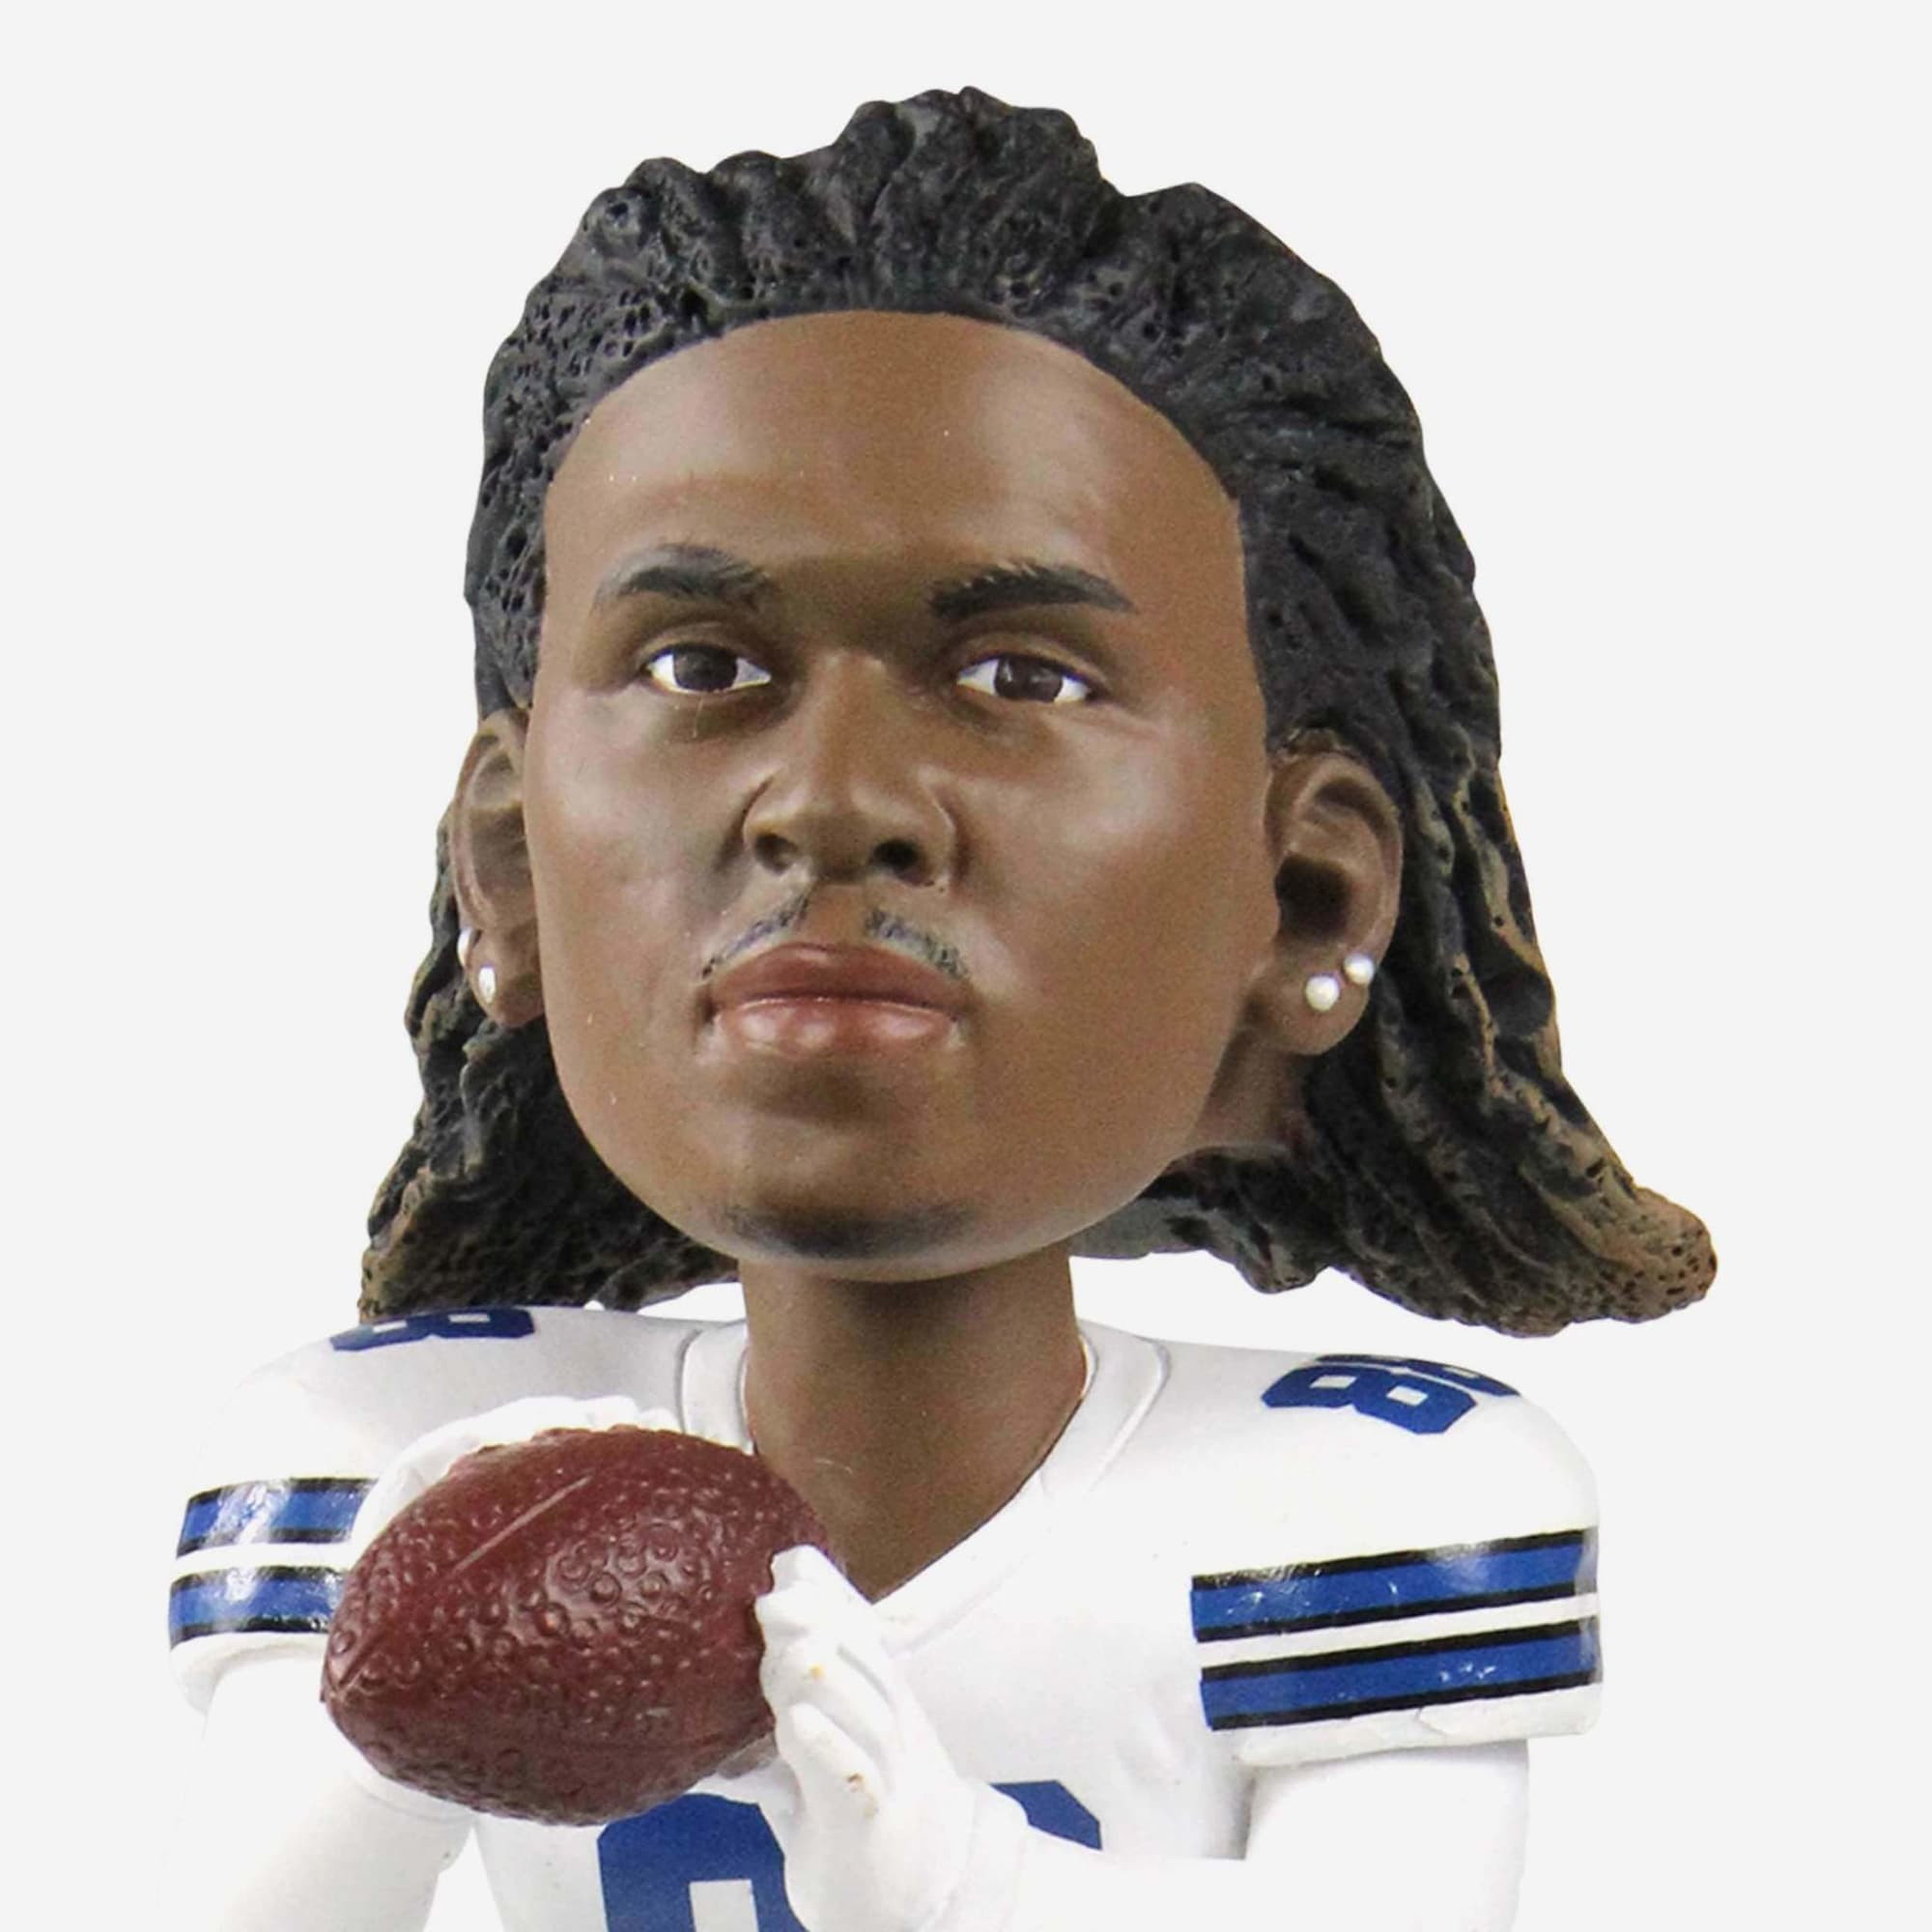 Dallas Cowboys fans need to check out this CeeDee Lamb bobblehead